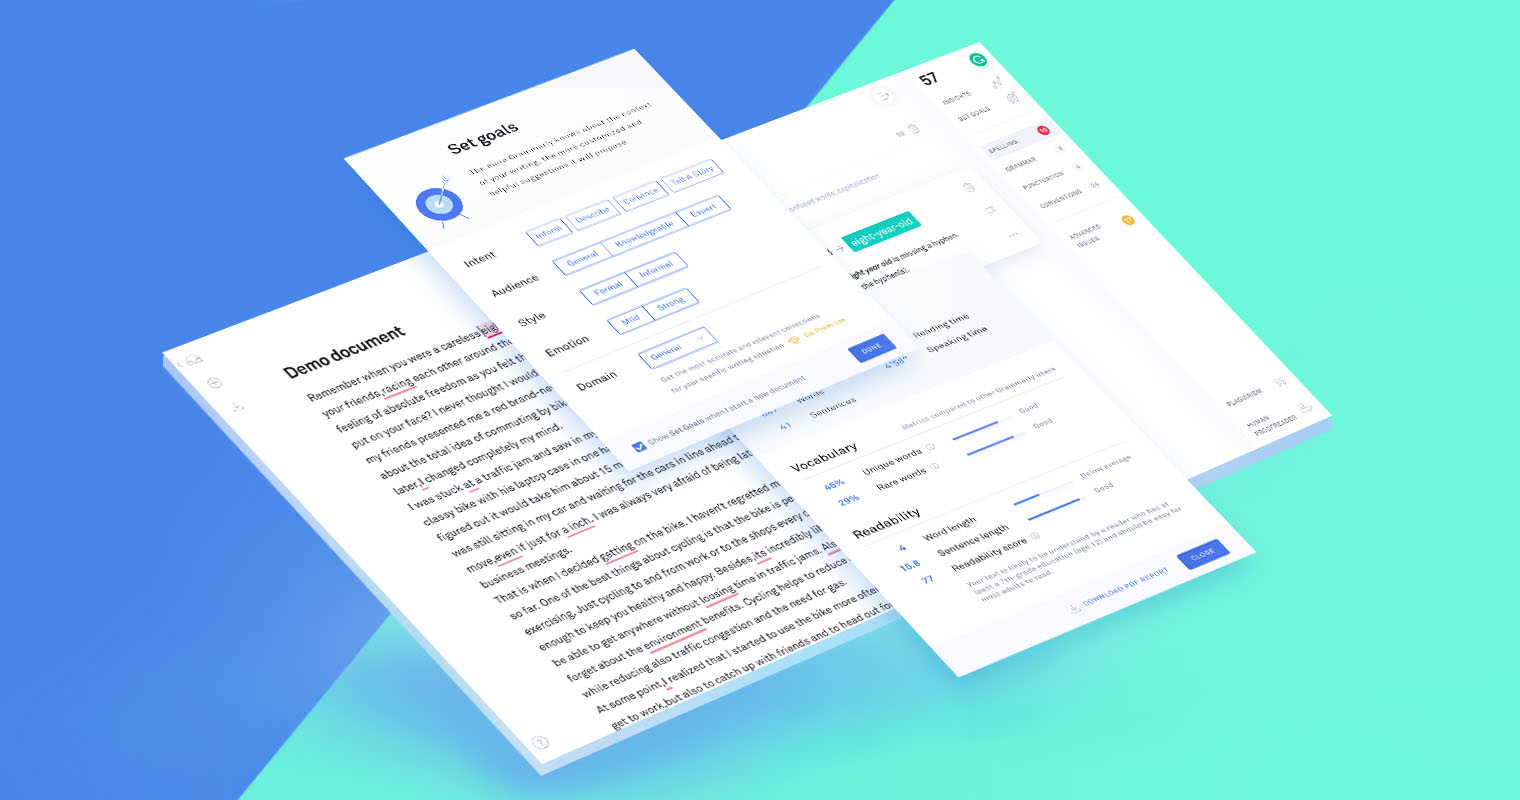 How To Use Grammarly Grammarly